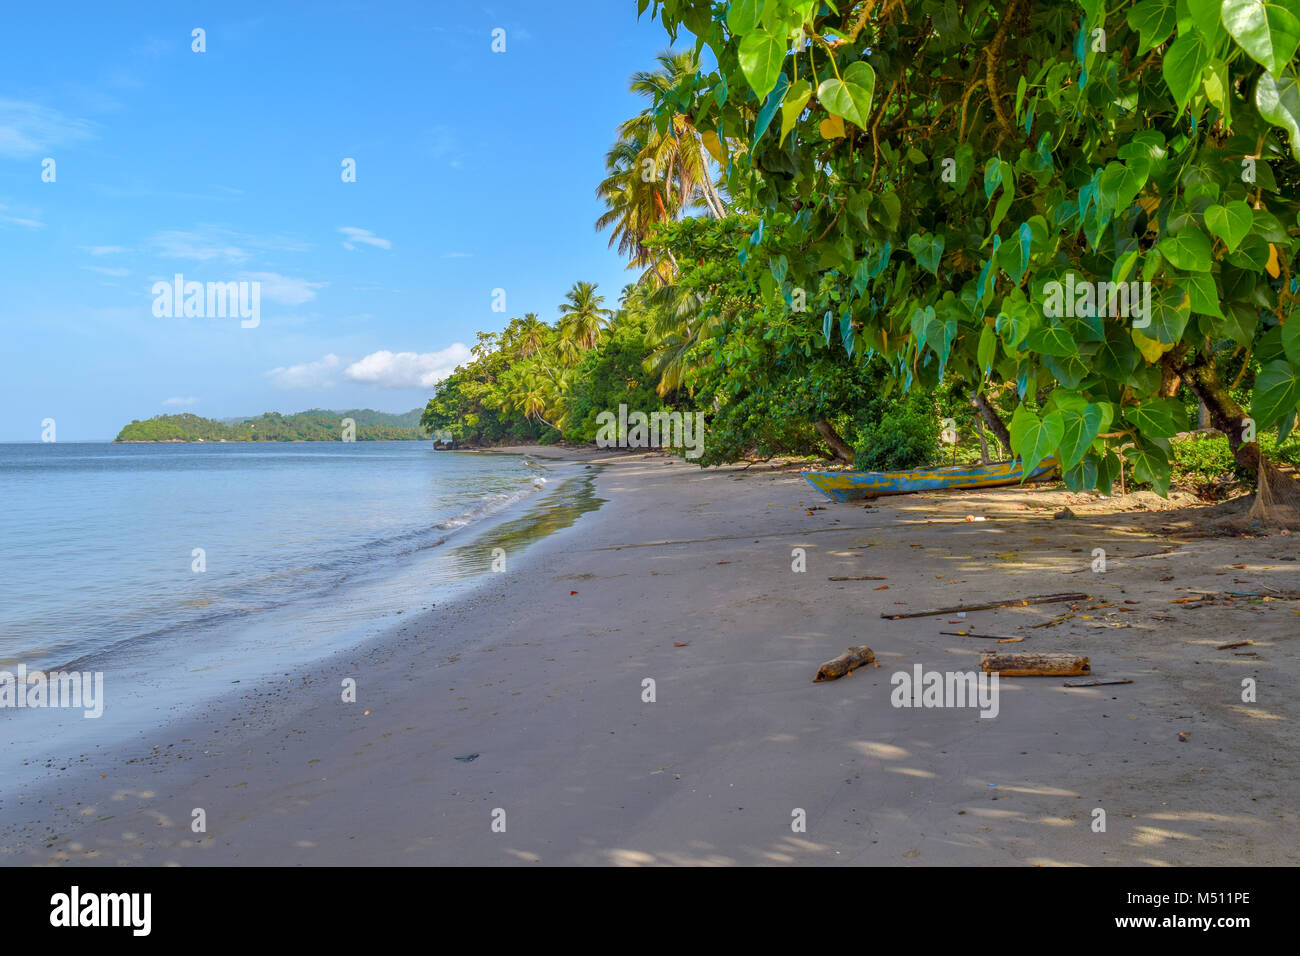 Palms and an old boat, sandy beach, Dominican Republic, caribbean sea - Stock Image